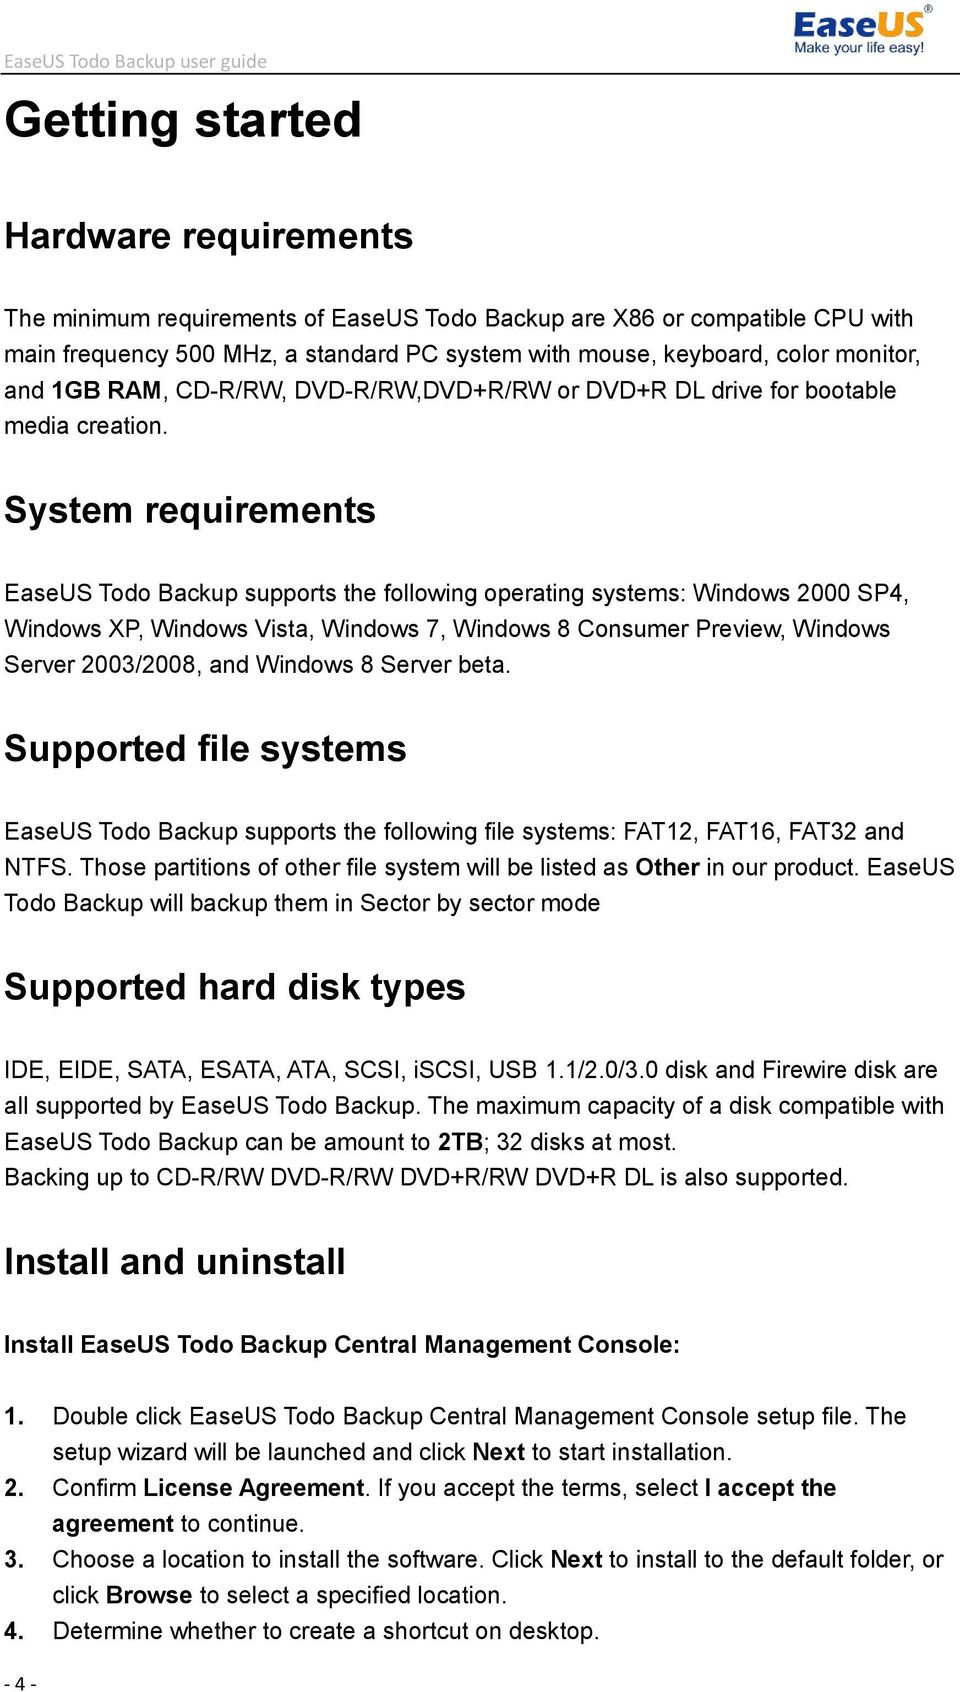 System requirements EaseUS Todo Backup supports the following operating systems: Windows 2000 SP4, Windows XP, Windows Vista, Windows 7, Windows 8 Consumer Preview, Windows Server 2003/2008, and